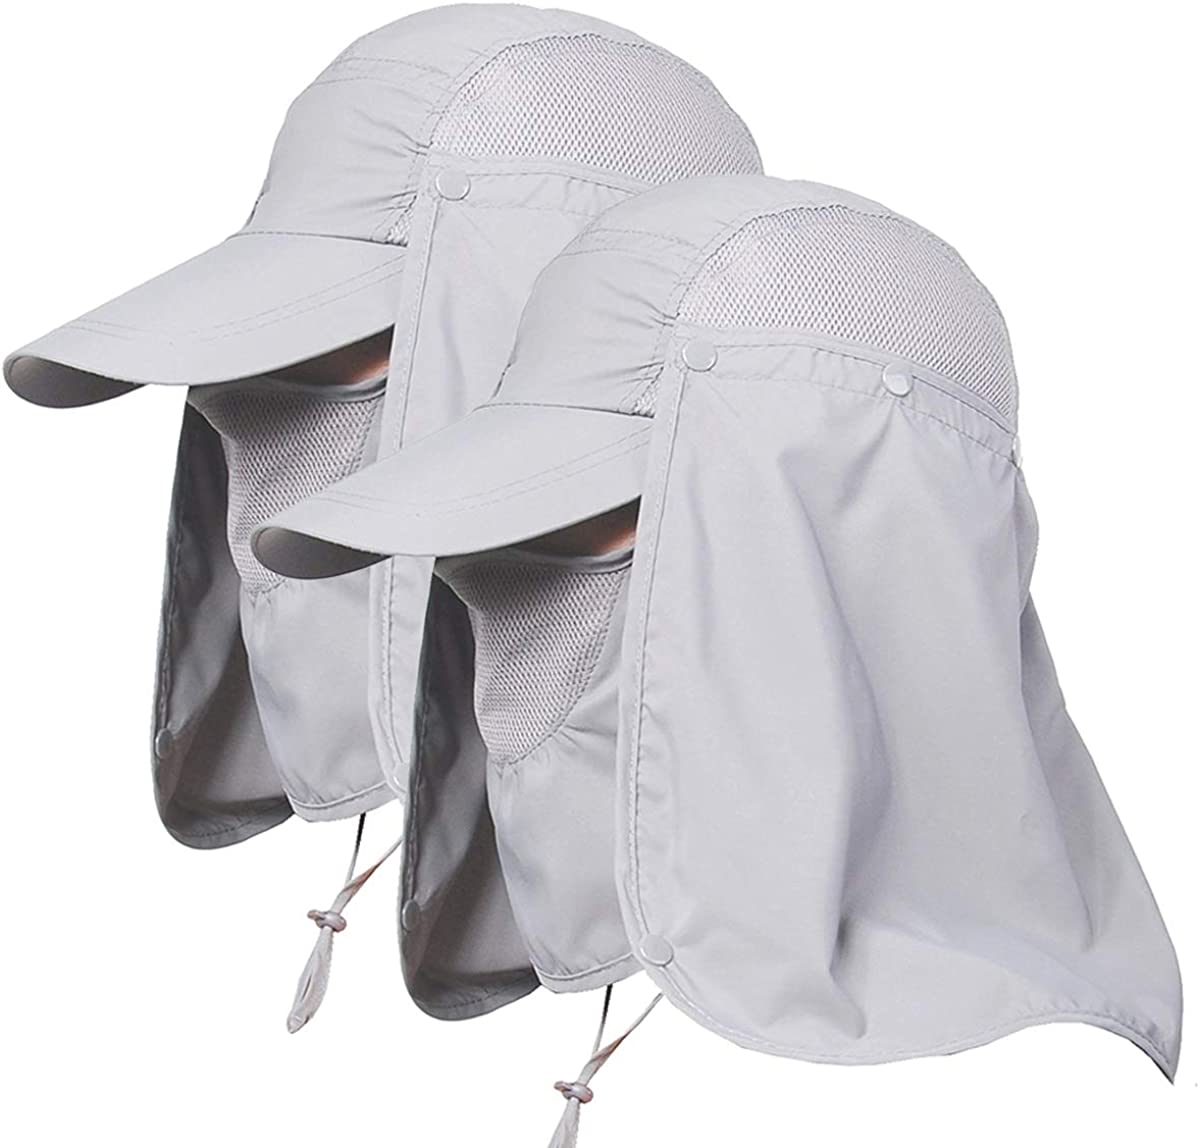 Hiking Fishing Wide Brim Hat Outdoor Sport Sun UV Protection Neck Face Flap Cap